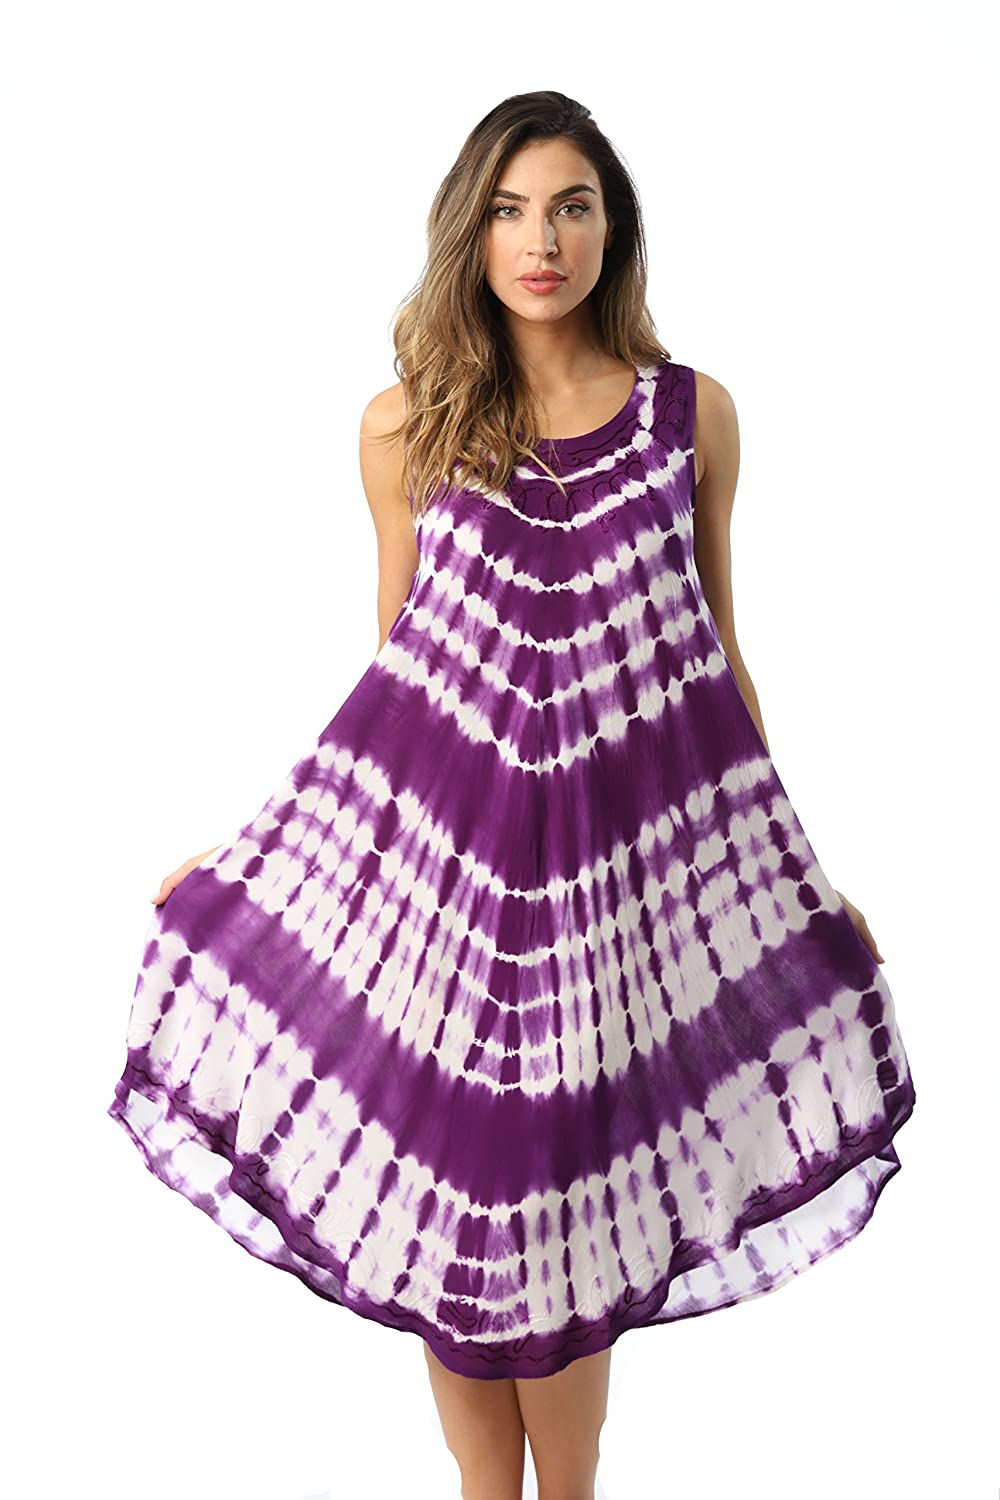 aa15570908 Chinabrands.com: Dropshipping & Wholesale cheap Riviera Sun Tie Dye Summer  Dress - Beach Cover up online.